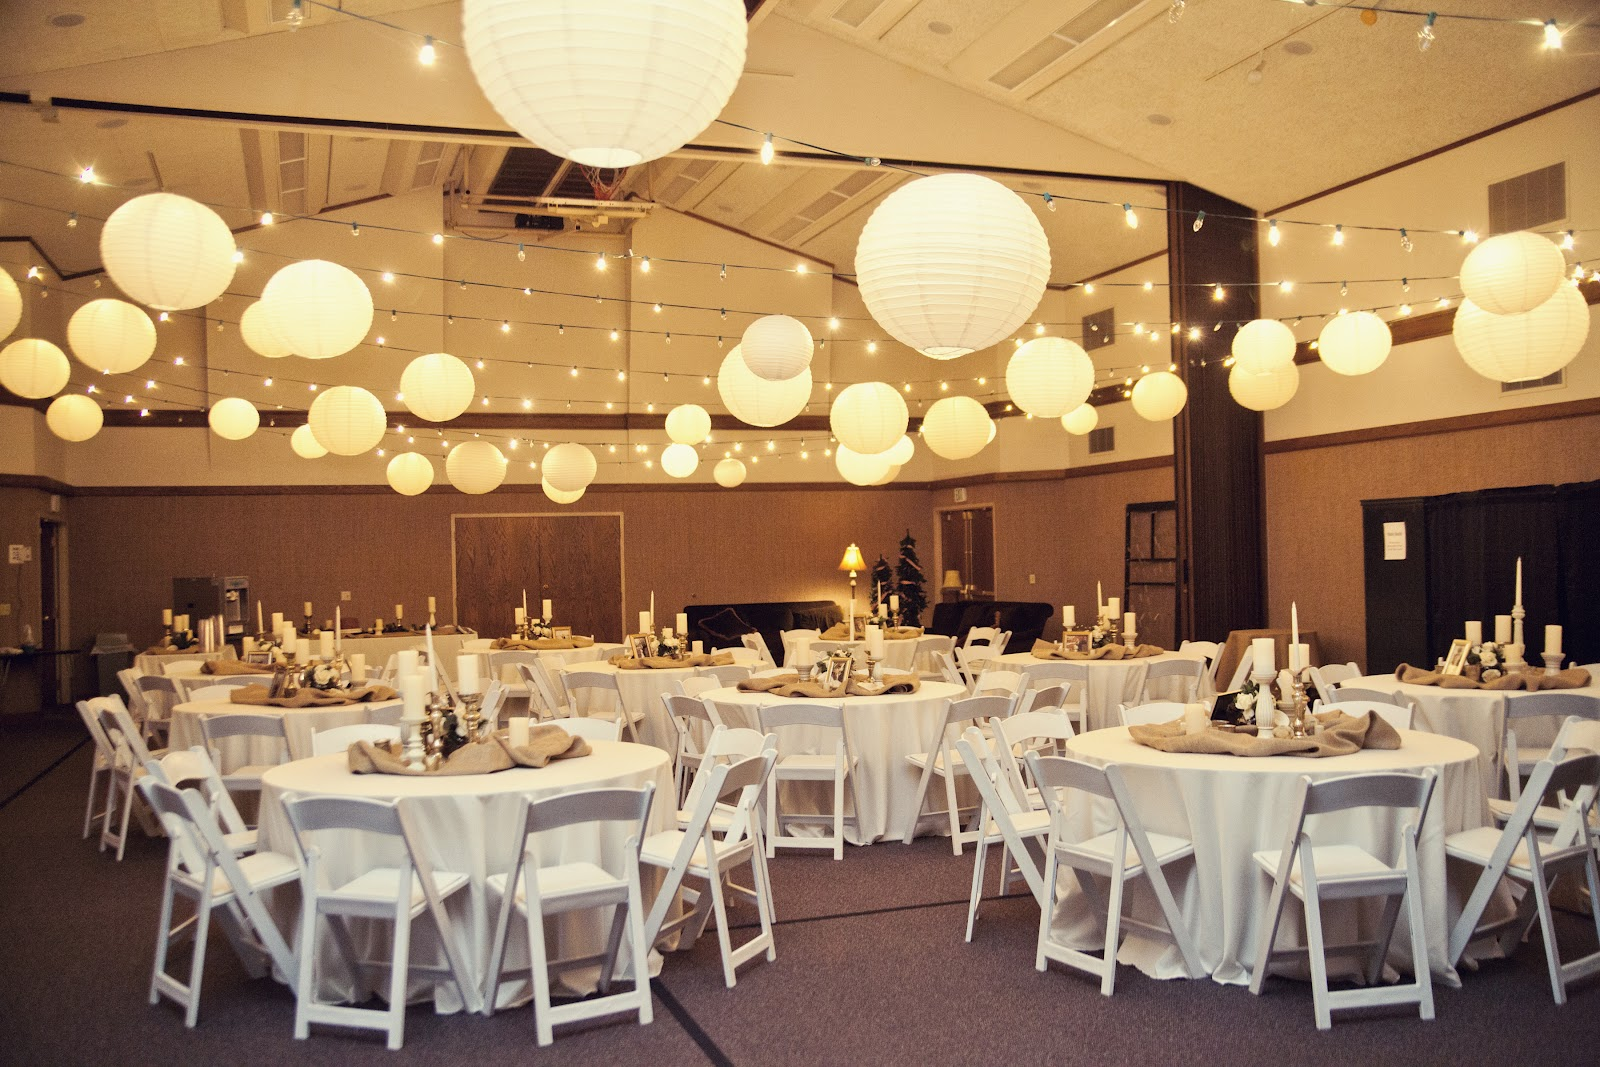 Beehive art salon wedding for Decoration hall